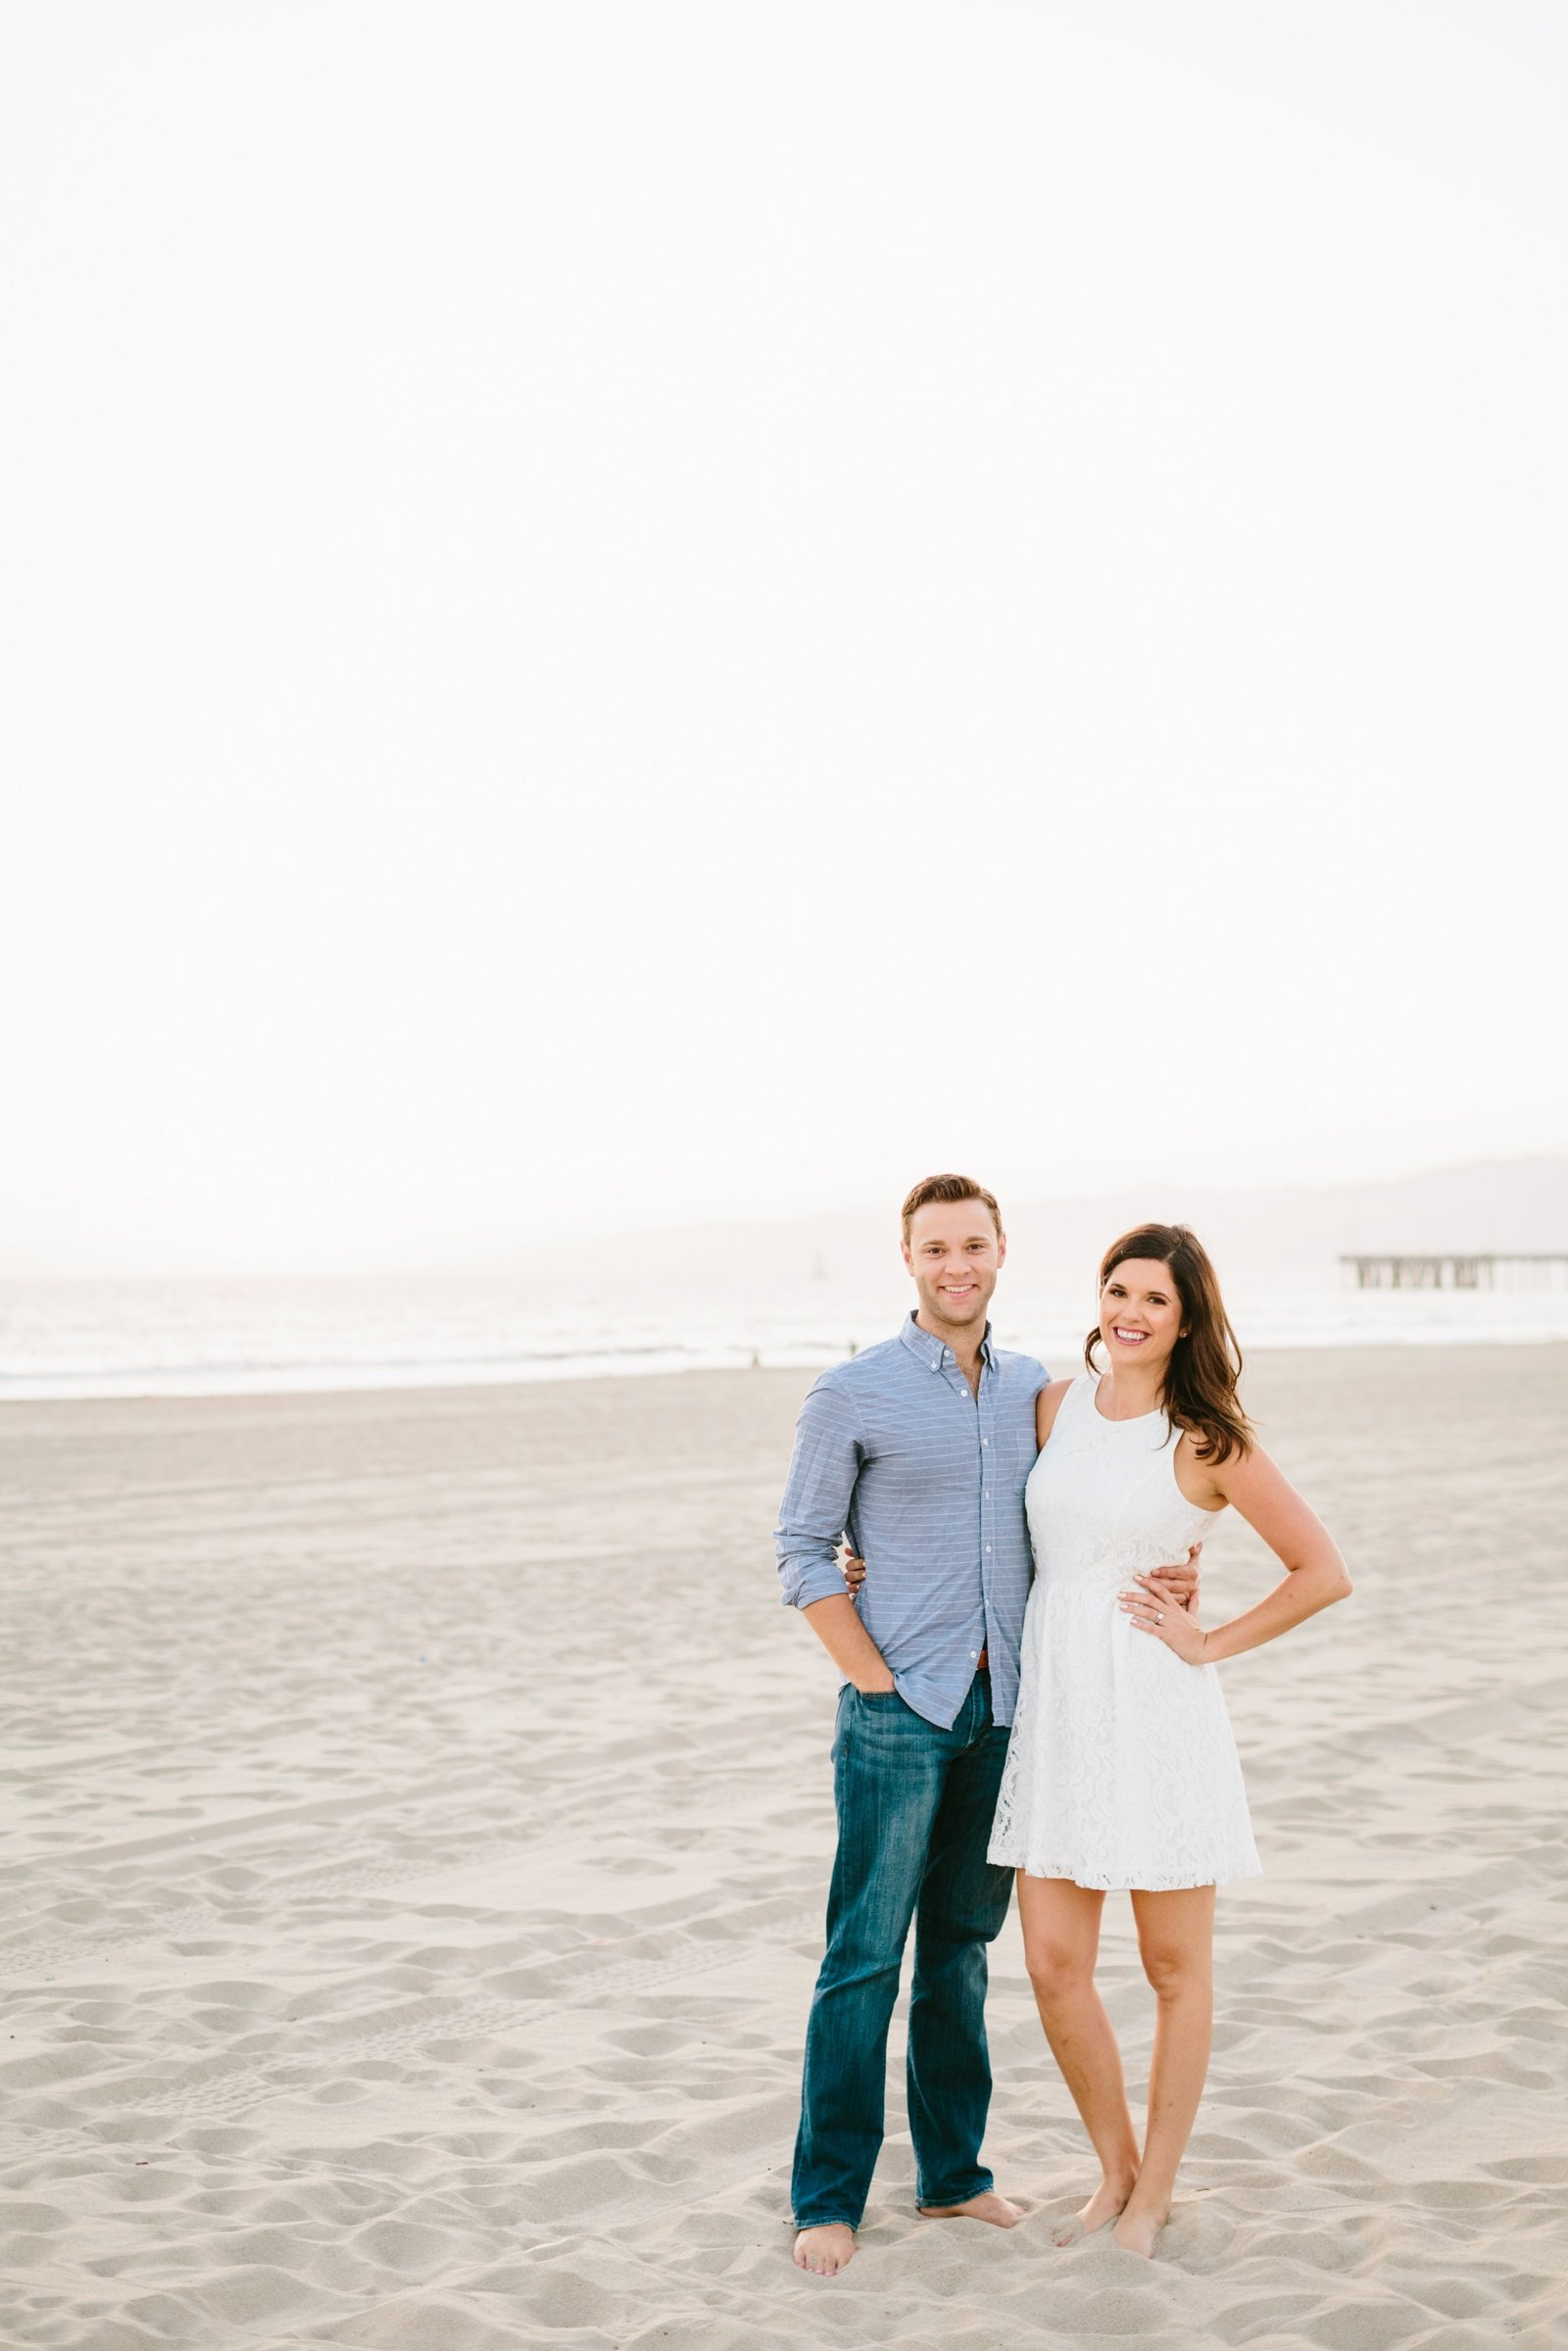 Engagement Photos-Jodee Debes Photography-106